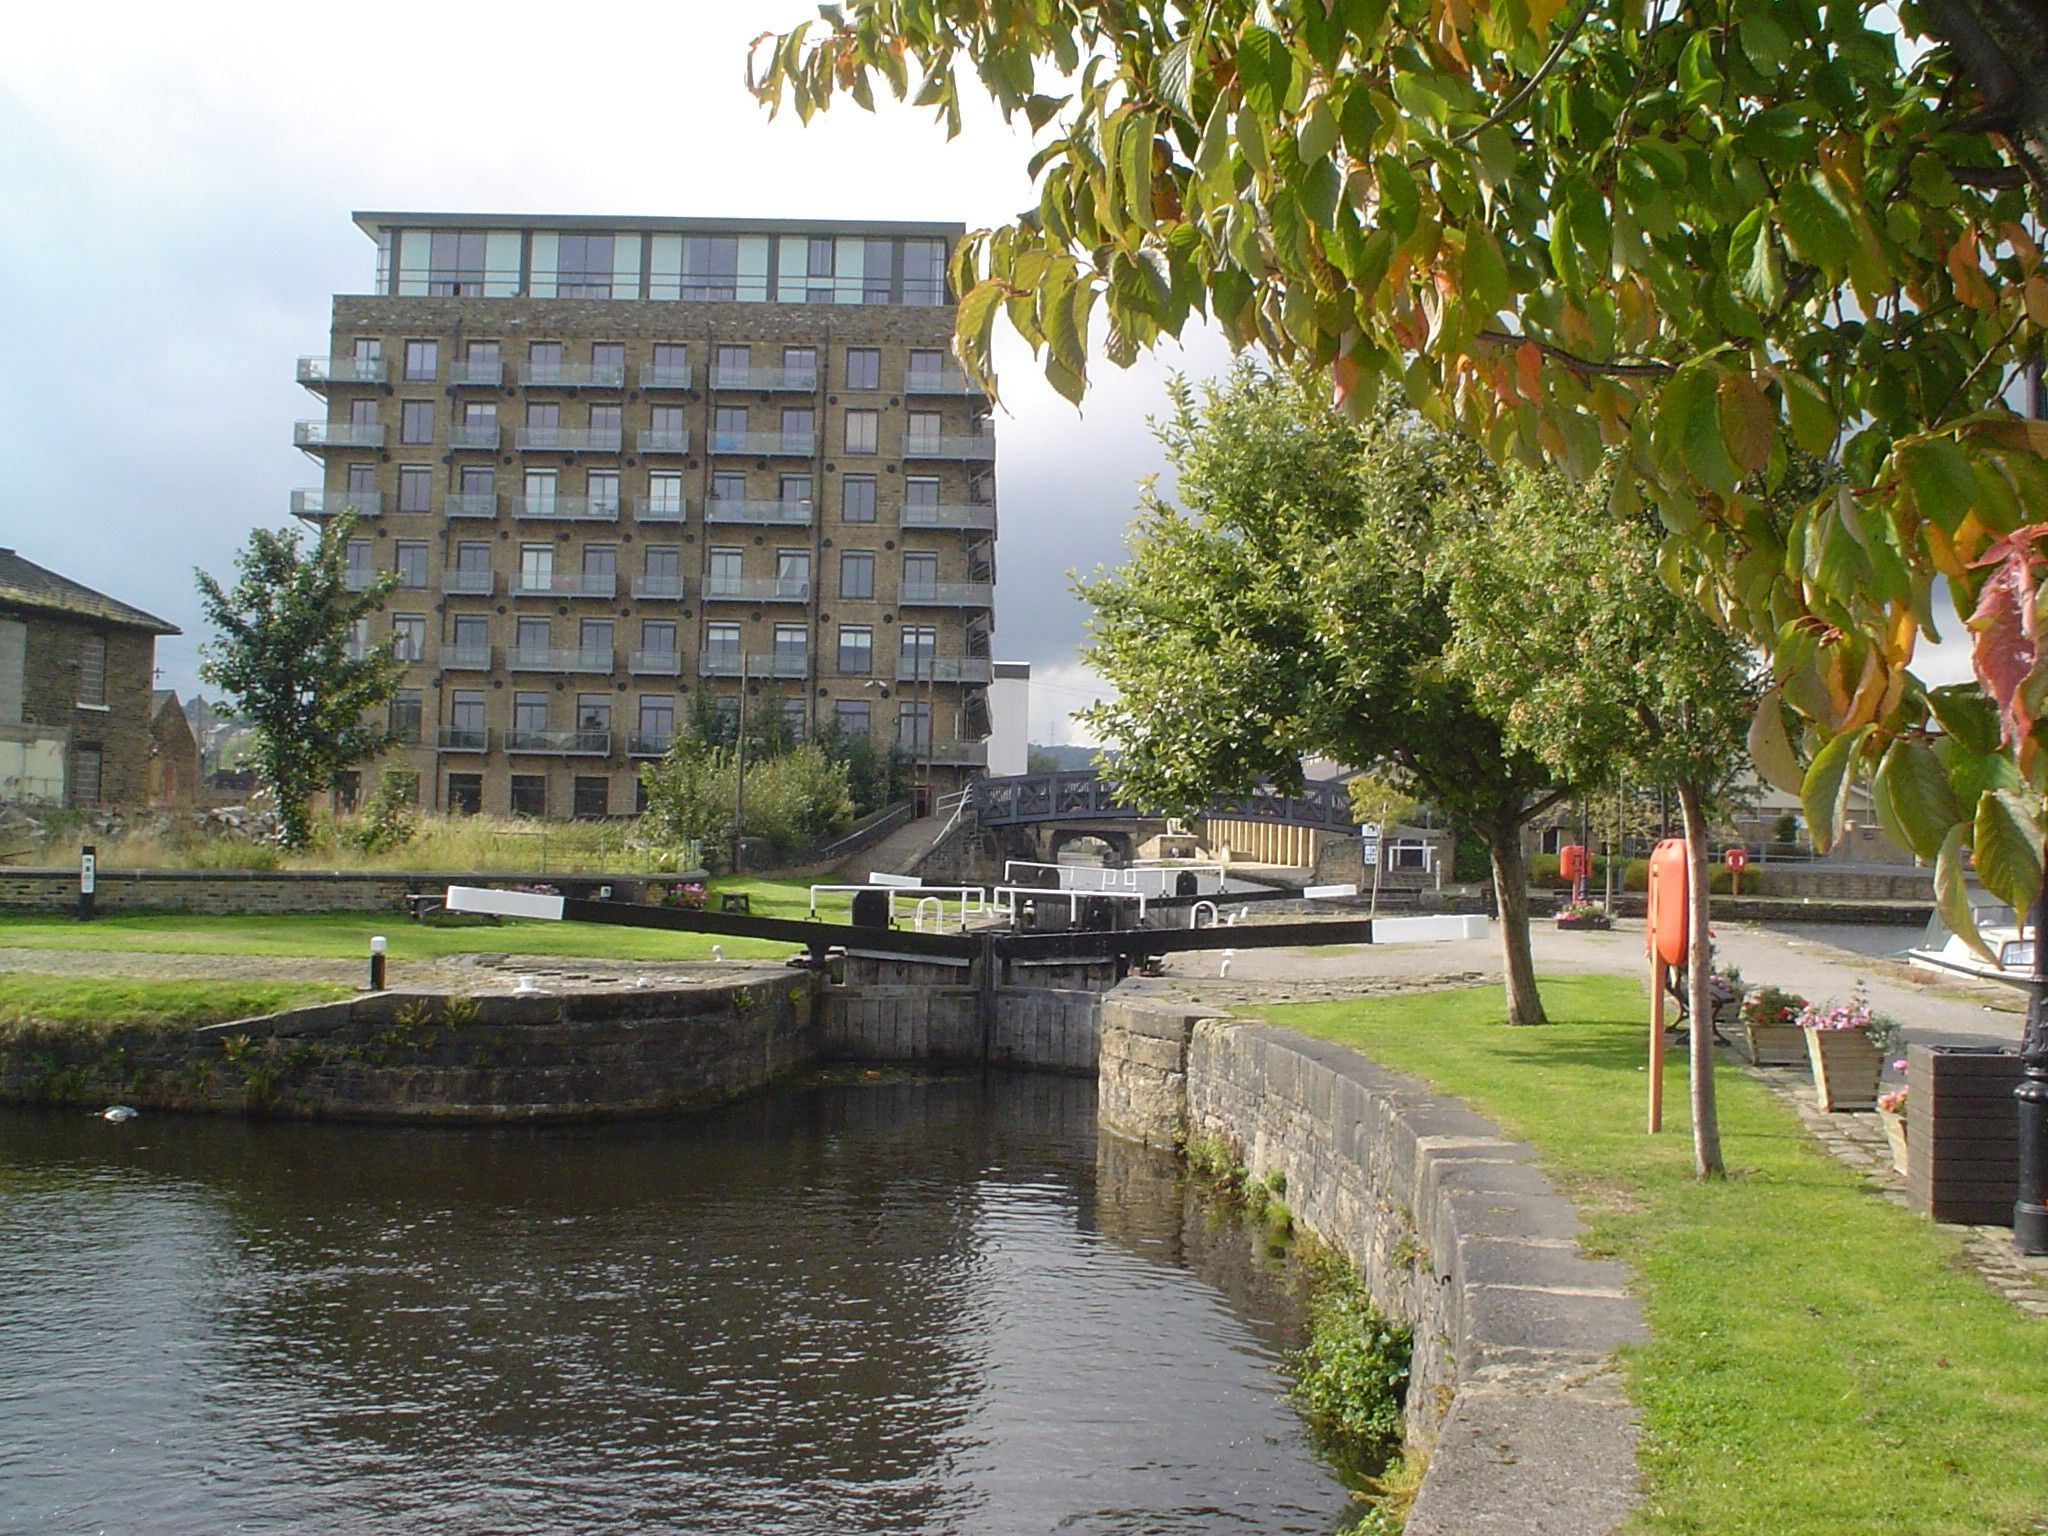 1 bedroom ground floor flat/apartment SSTC in Brighouse - Photograph 1.